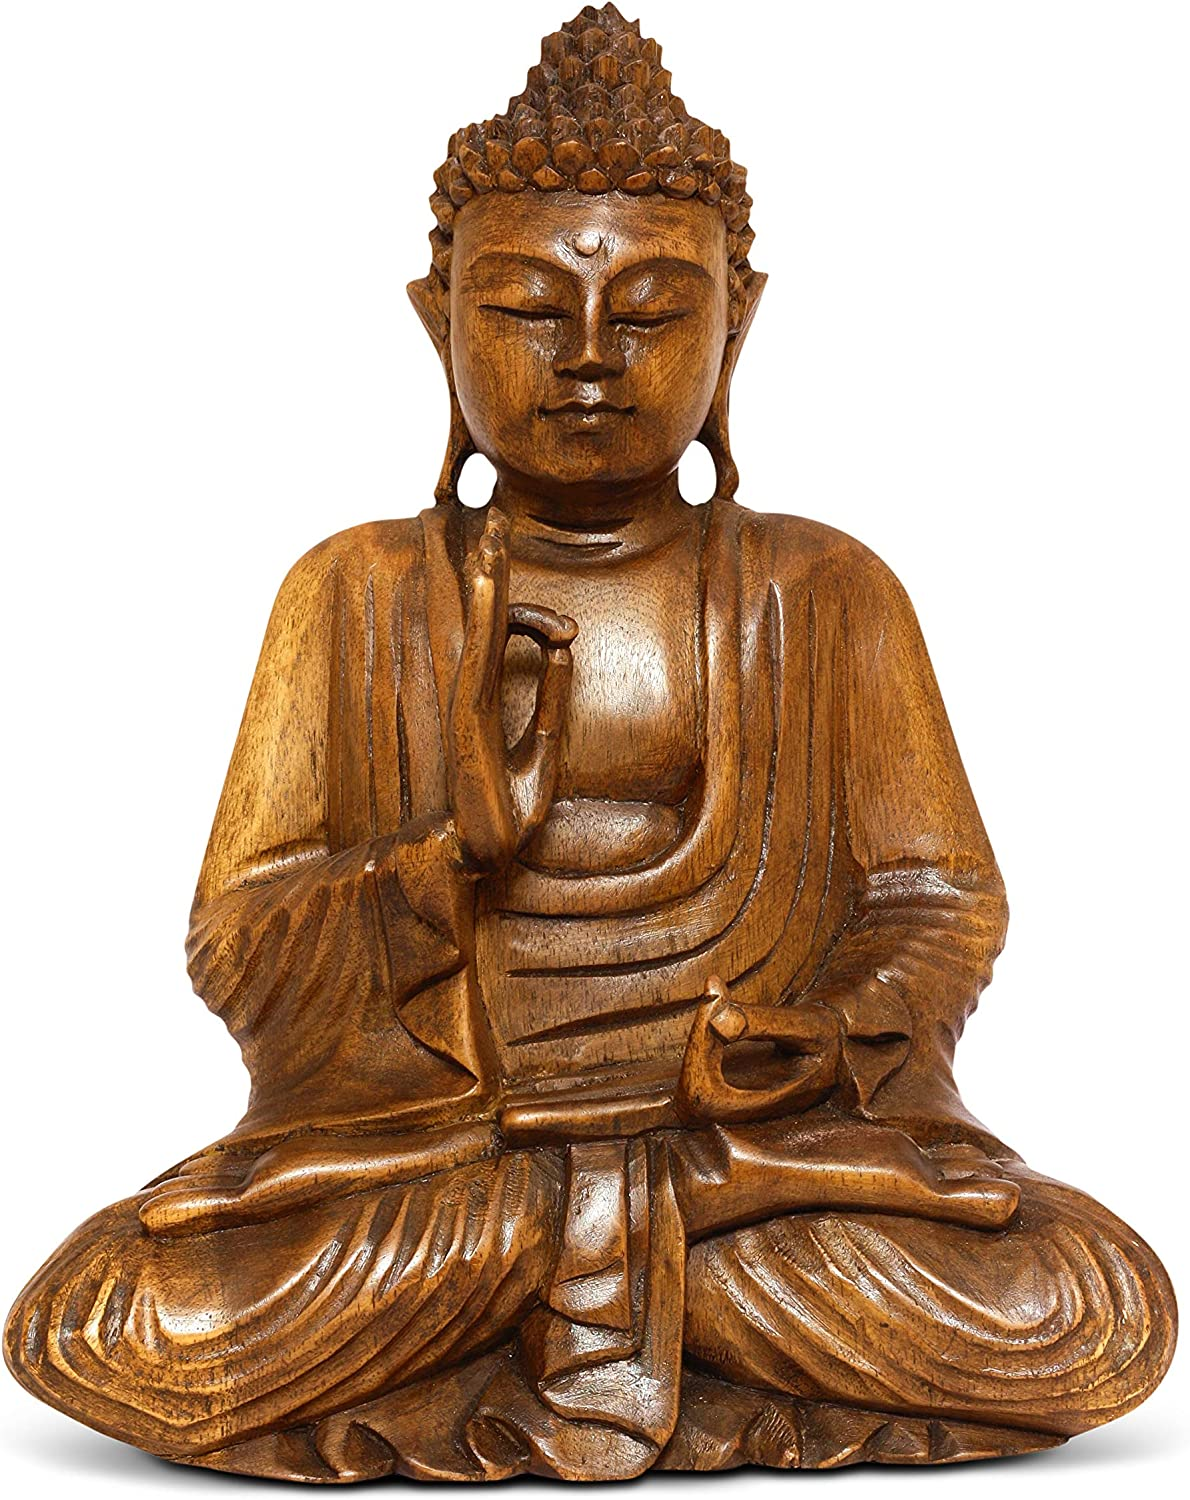 Outlet ☆ Free Shipping G6 COLLECTION Wooden Serene New Free Shipping Sitting Handmade Statue Medit Buddha